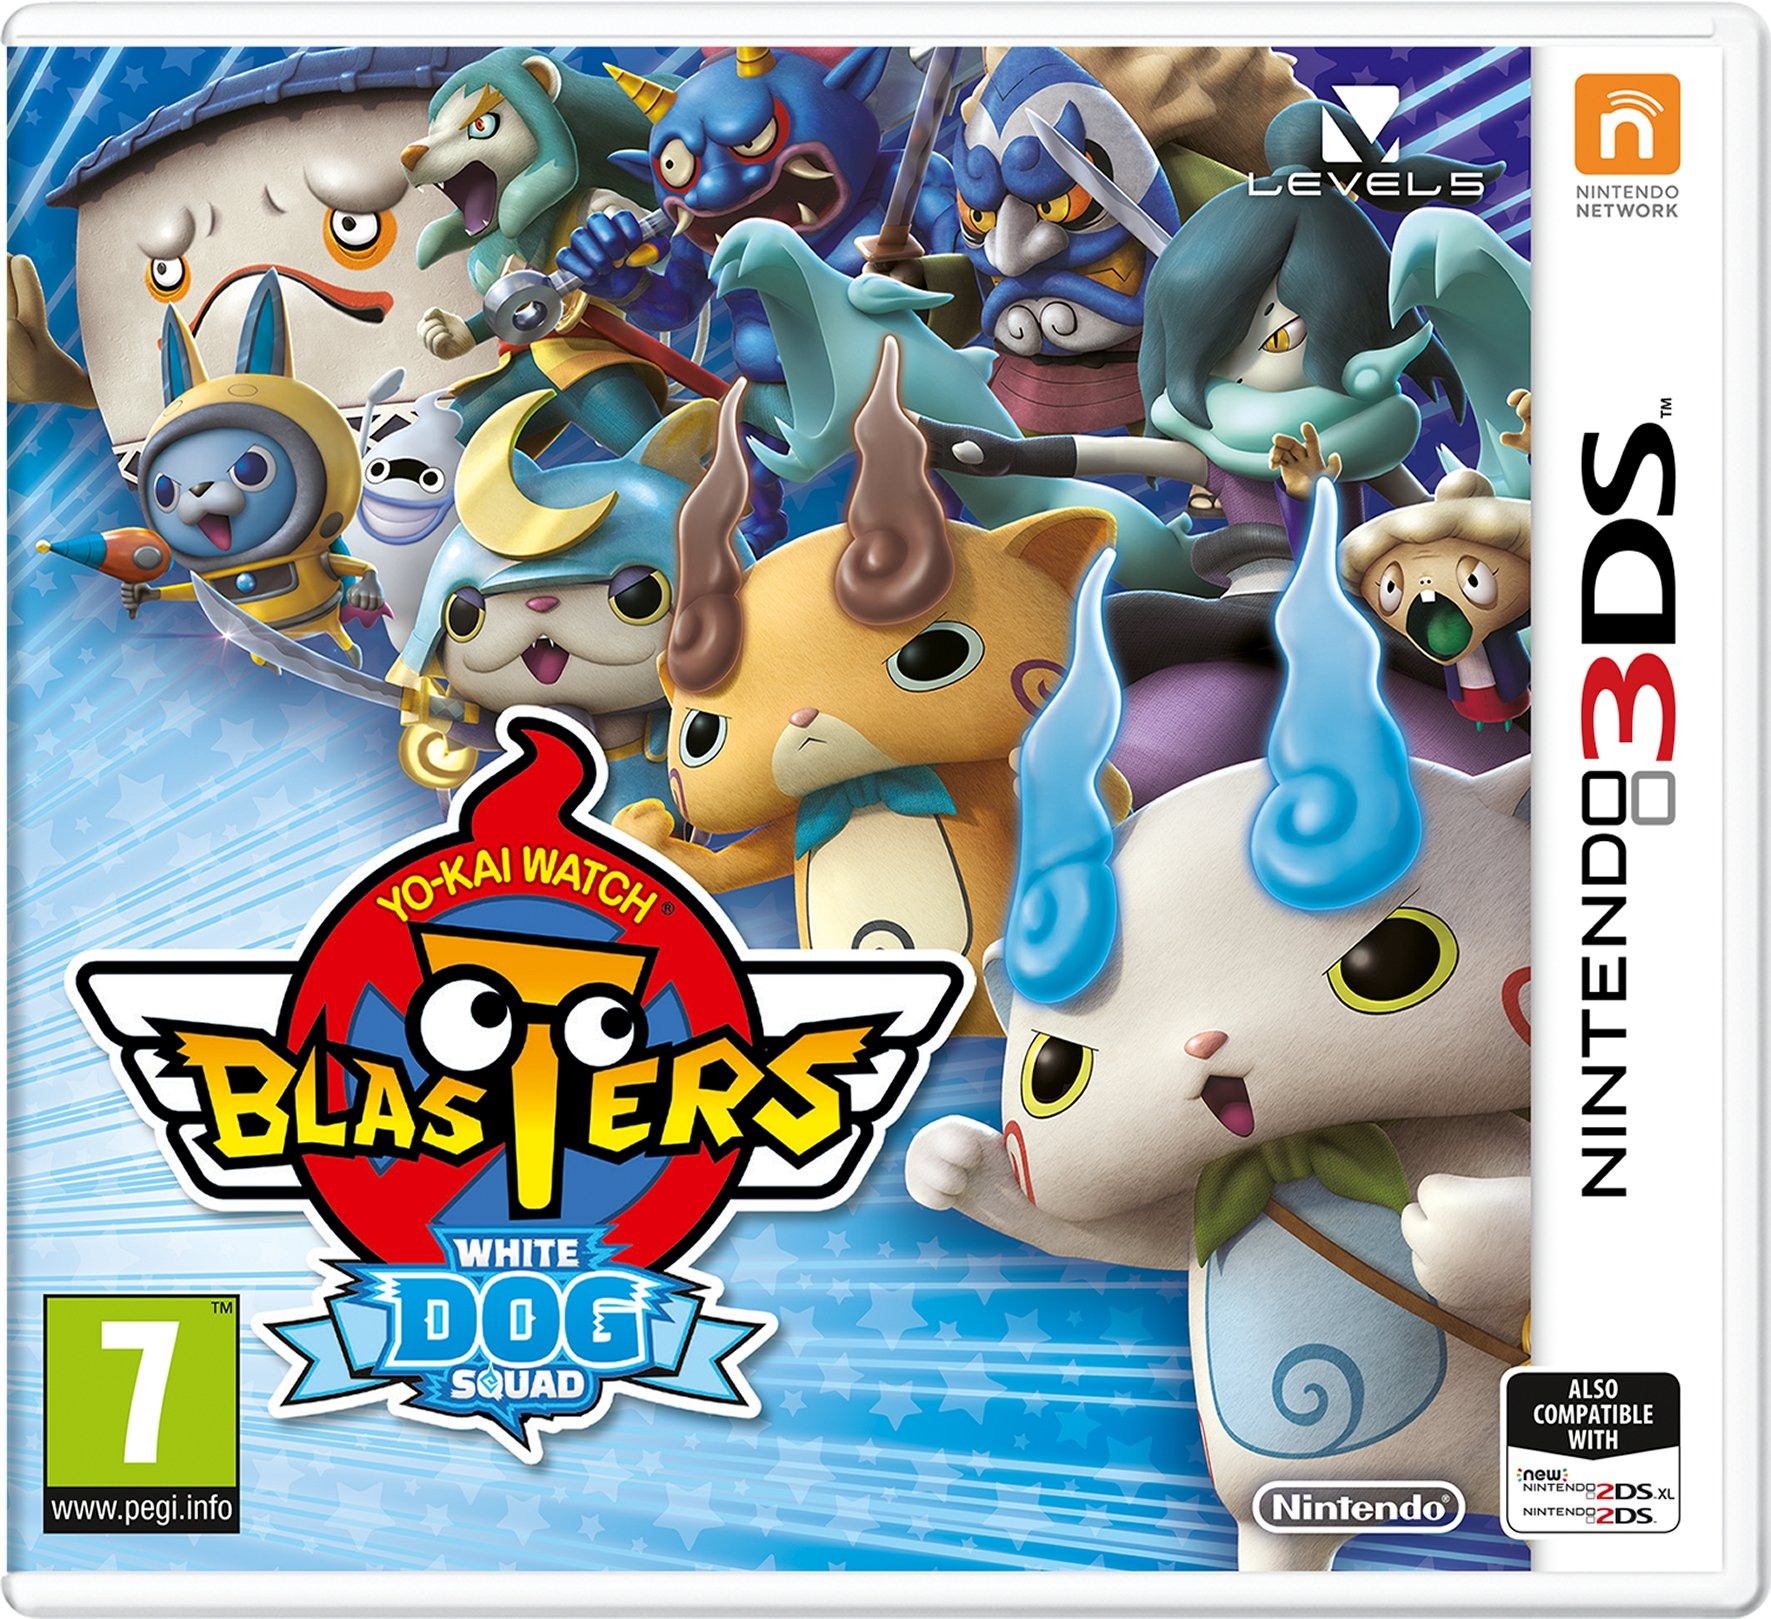 YO-KAI Watch Blasters White Dog Squad (Nintendo 3DS)